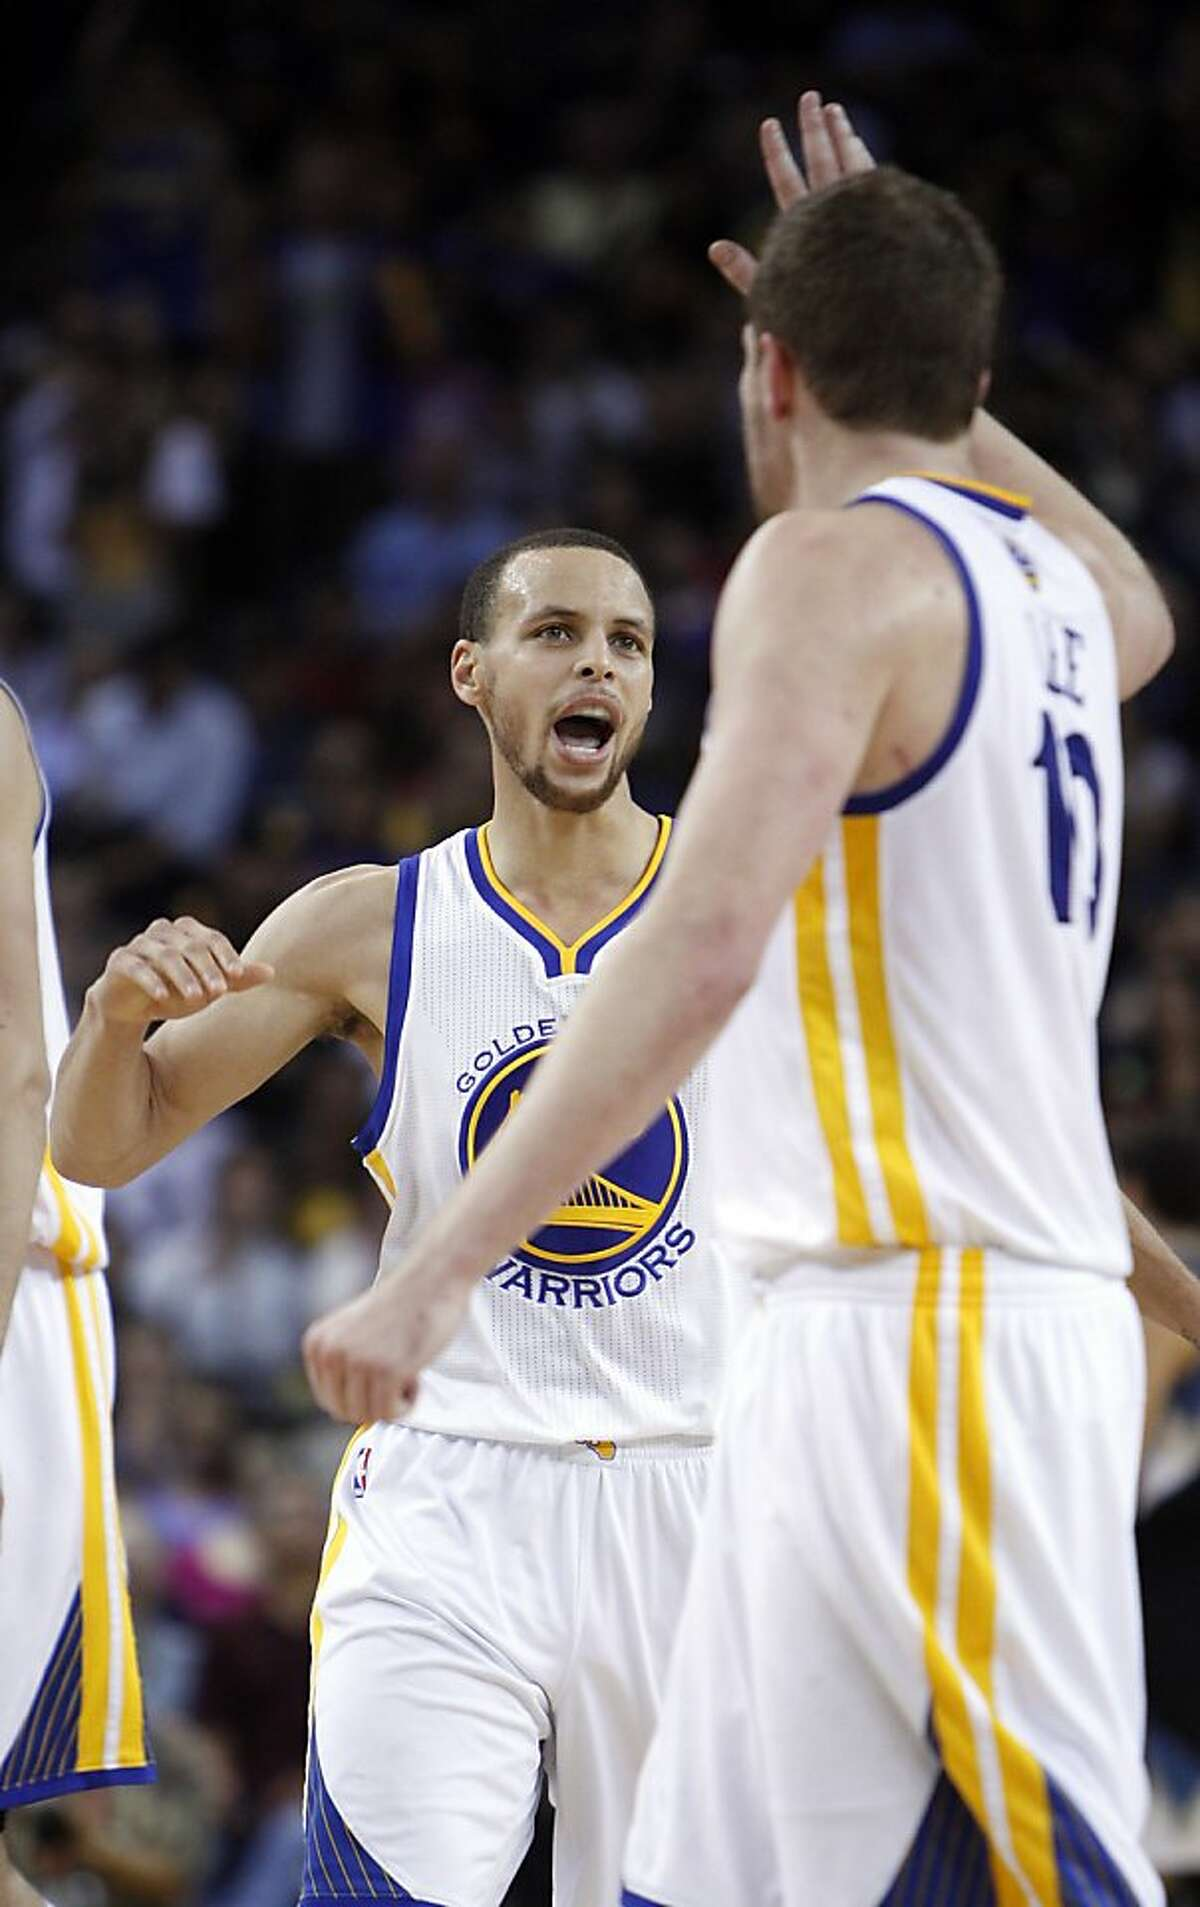 Stephen Curry, left, and David Lee, right, react after Curry hit a three-point shot in the second half. The Golden State Warriors played the Minnesota Timberwolves at Oracle Arena in Oakland, Calif., on Tuesday, April 9, 2013, winning the game 105-89 and clinching a playoff berth for the first time since 2007.